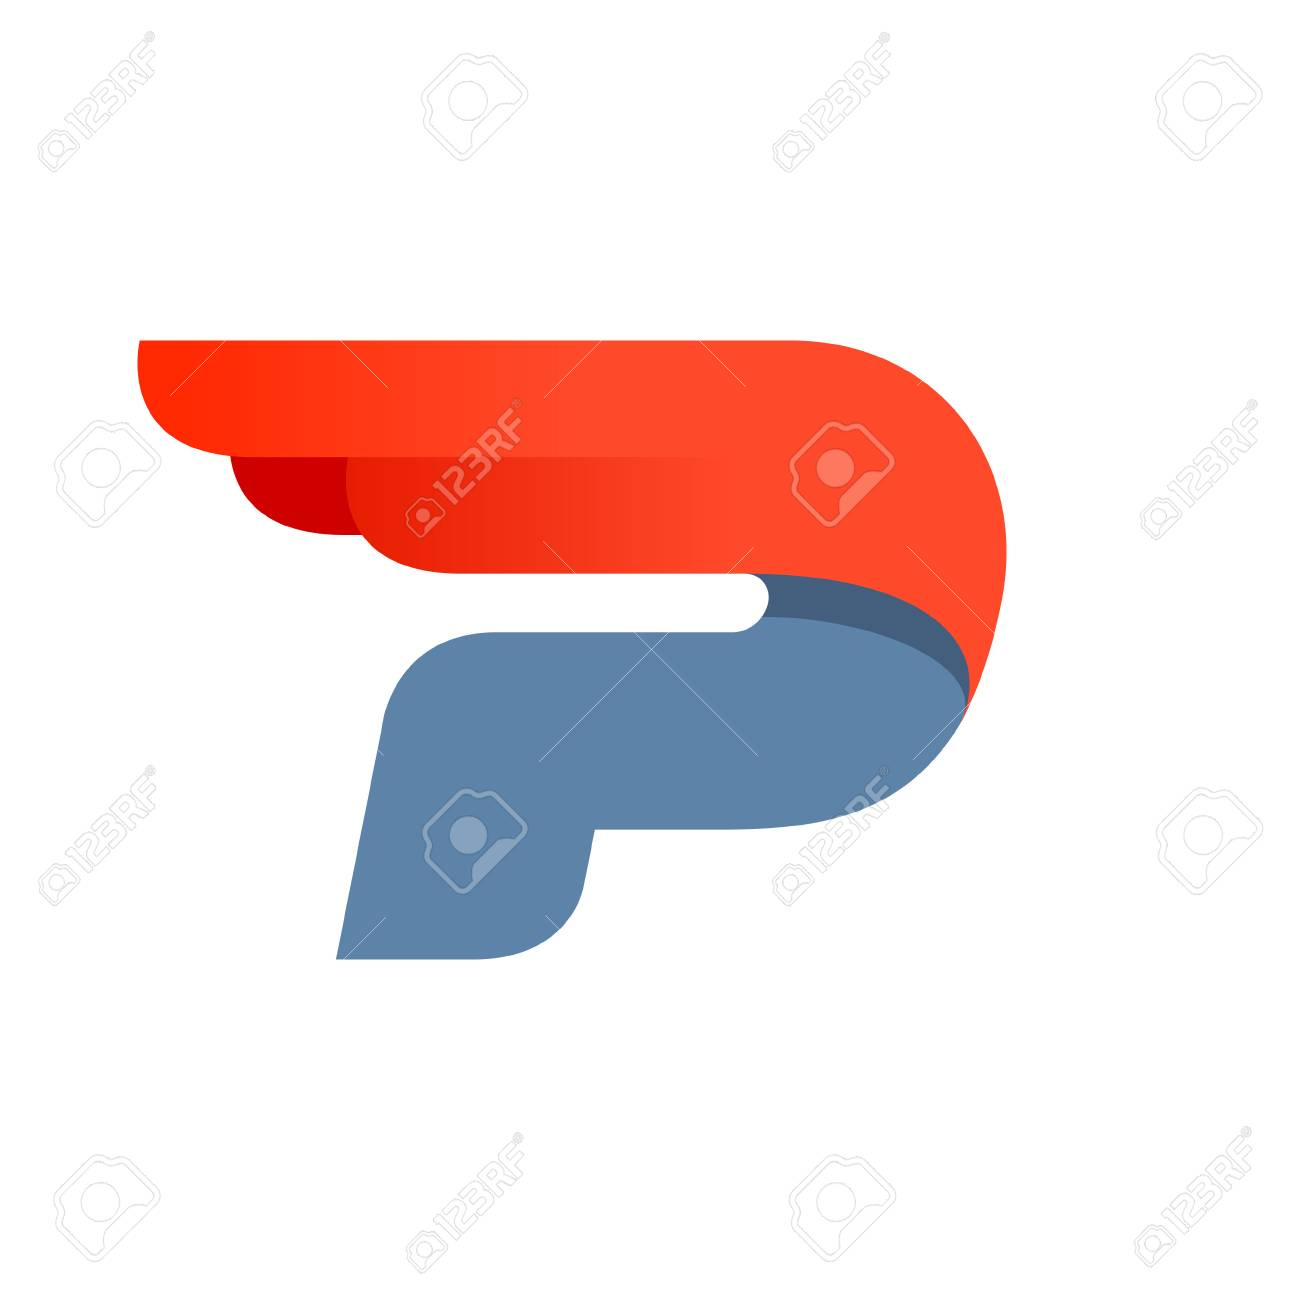 P letter logo design template. Fast speed vector unusual letter. Vector design template elements for your application or company. - 94760152